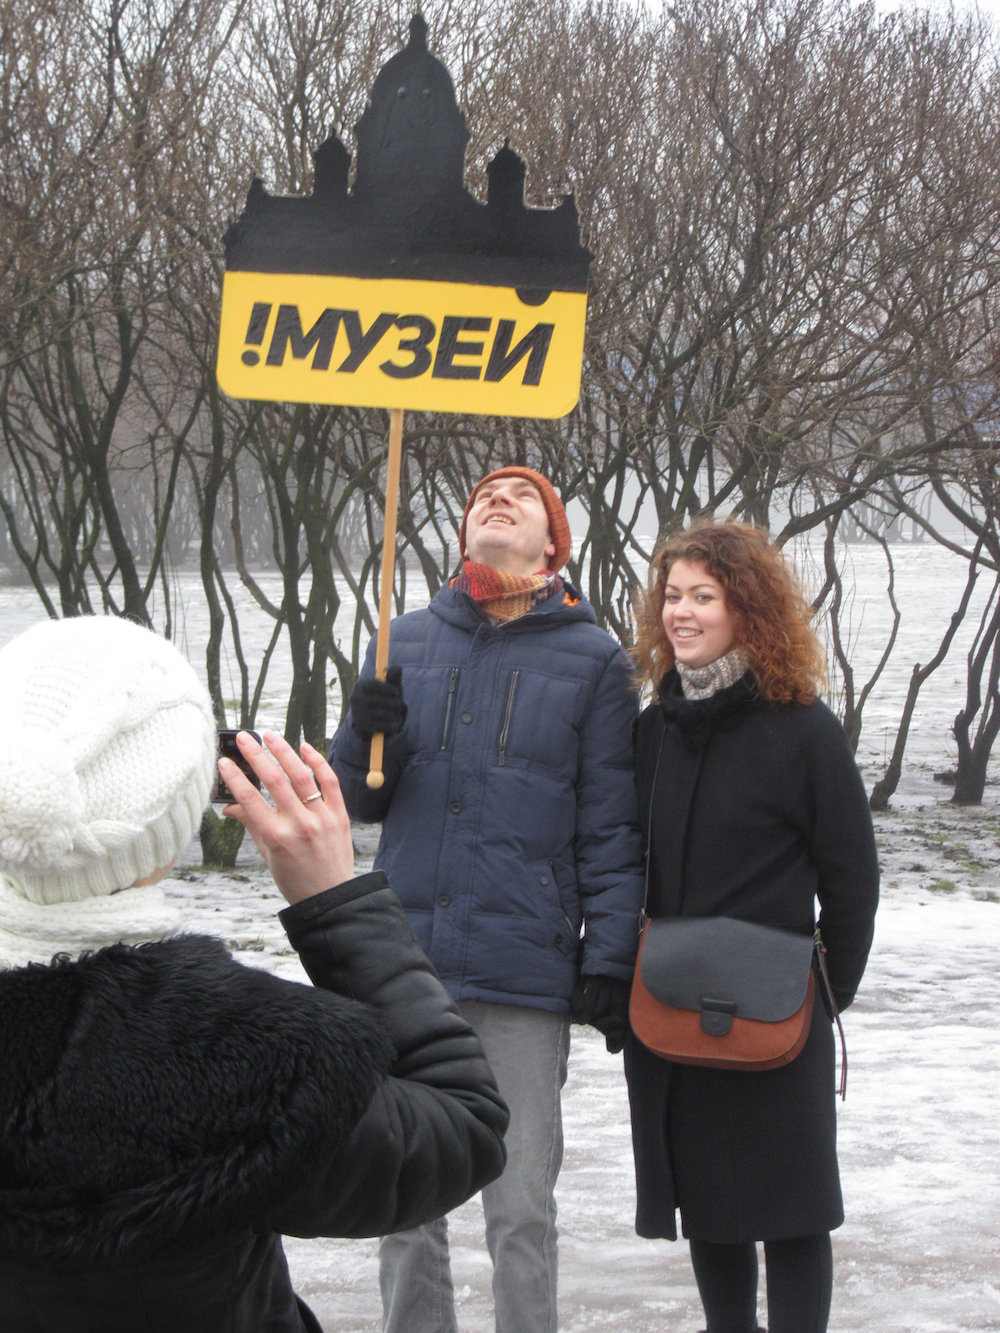 A protester holds up a sign reading 'Museum' (Alexei Kouprianov under a CC licence)